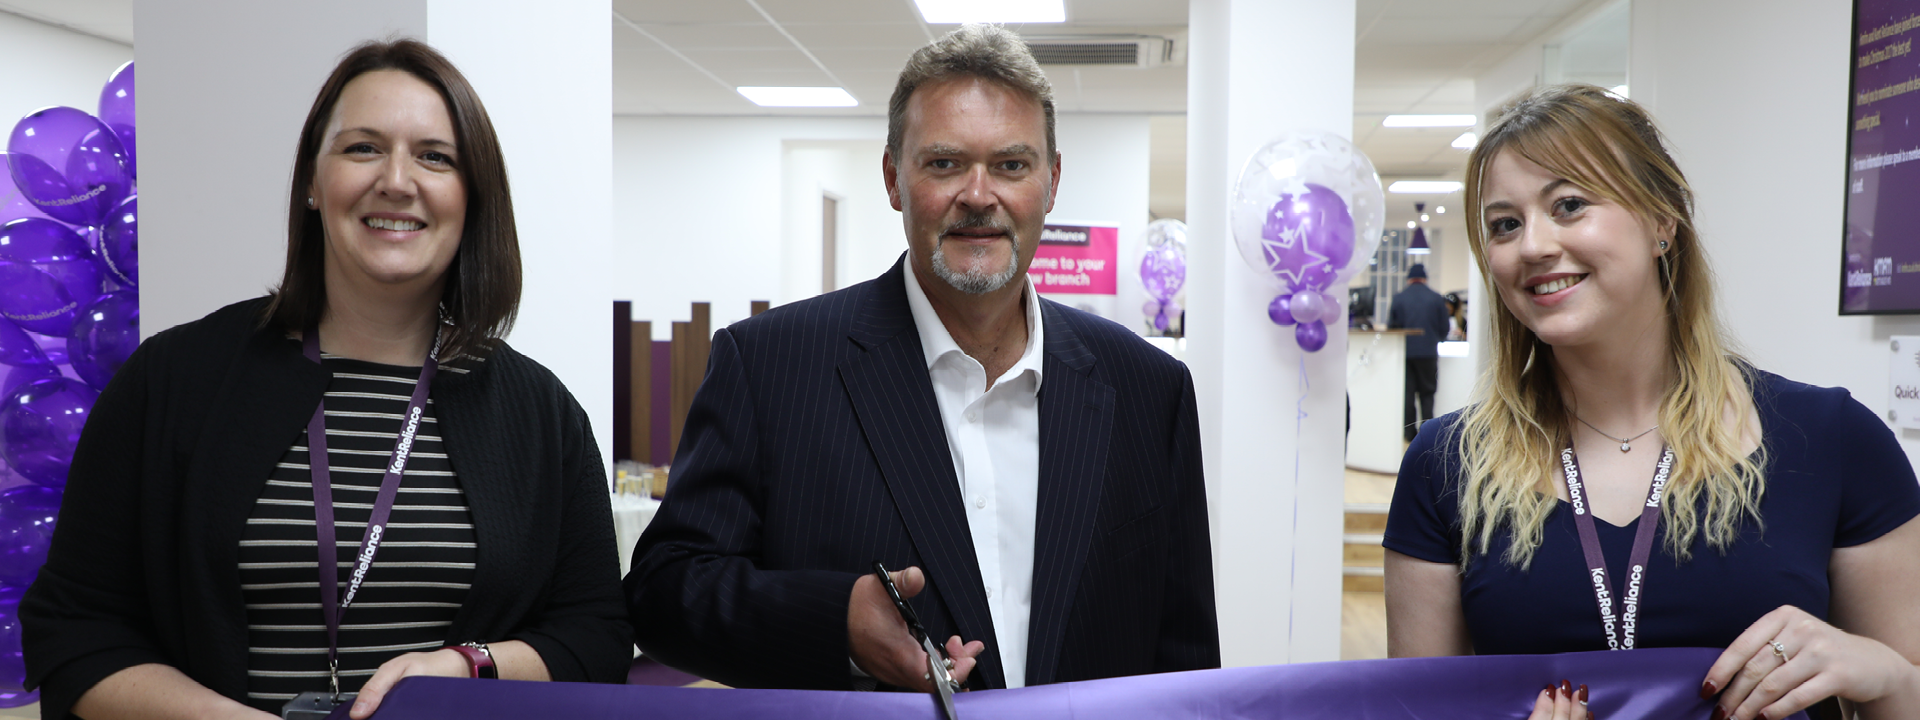 Kent Reliance opens new branch in Maidstone High Street